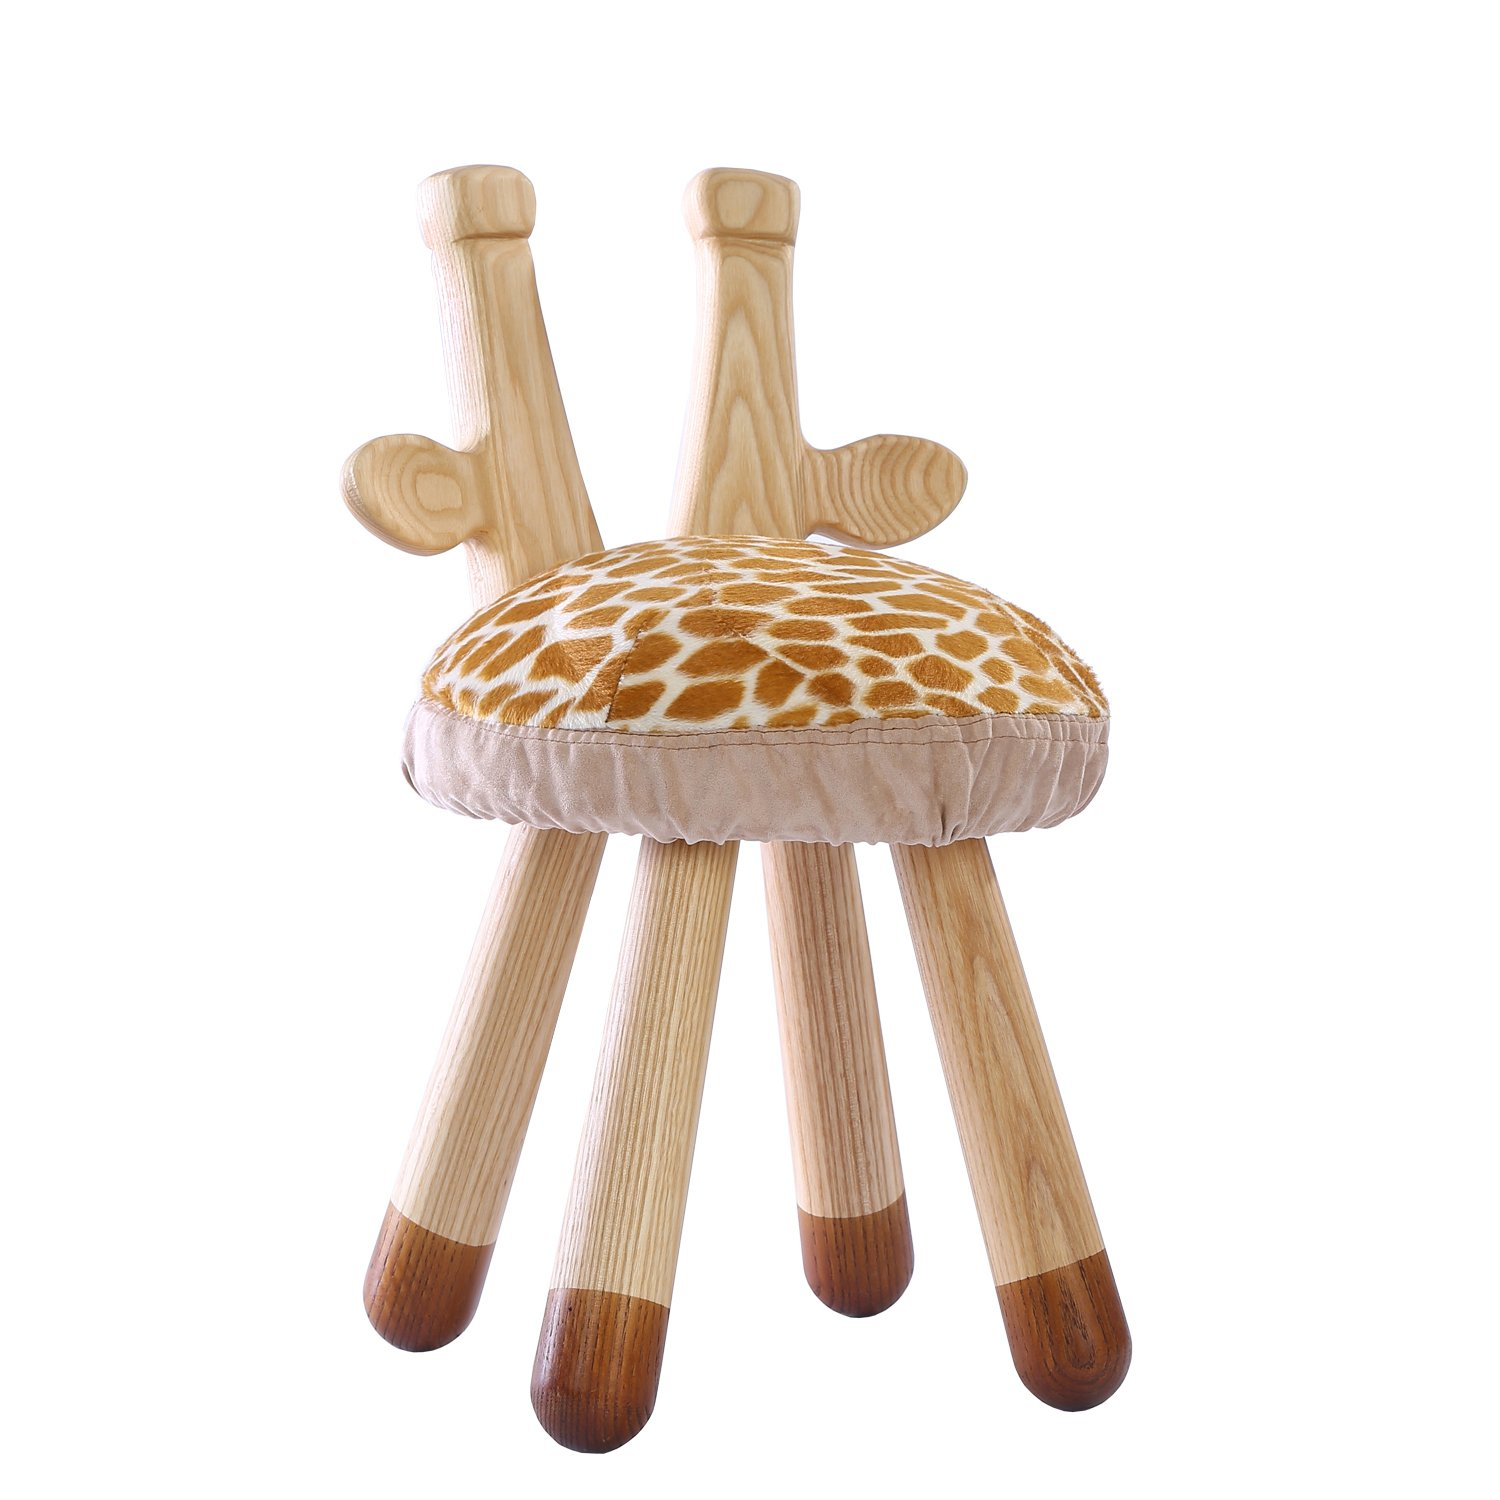 YouHi Children Solid Wood Stool with Memory Cotton Cushion Animal Appearance Modeling Chair for Reading and Eating (Giraffe)